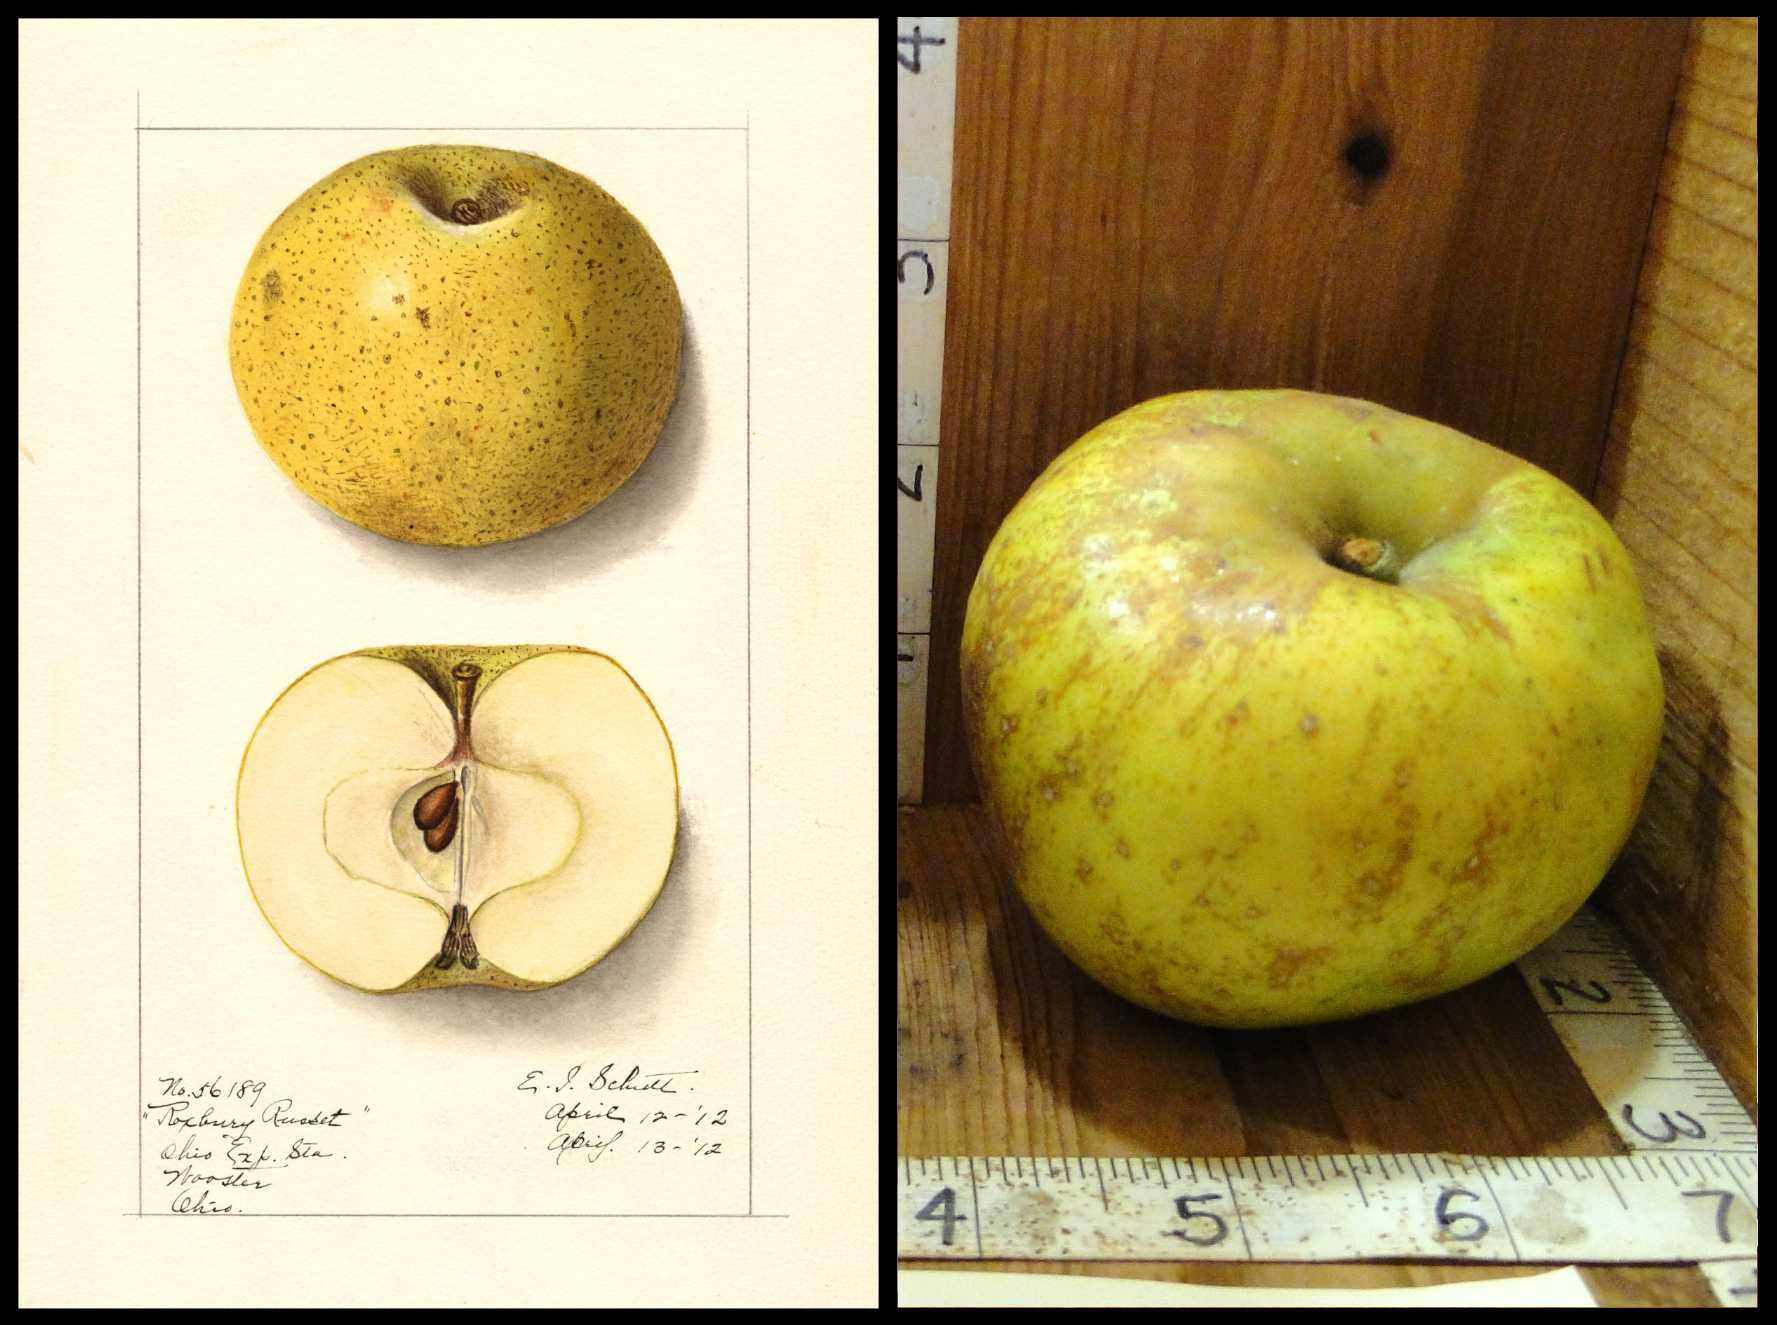 yellow apple with numerous small brown spots